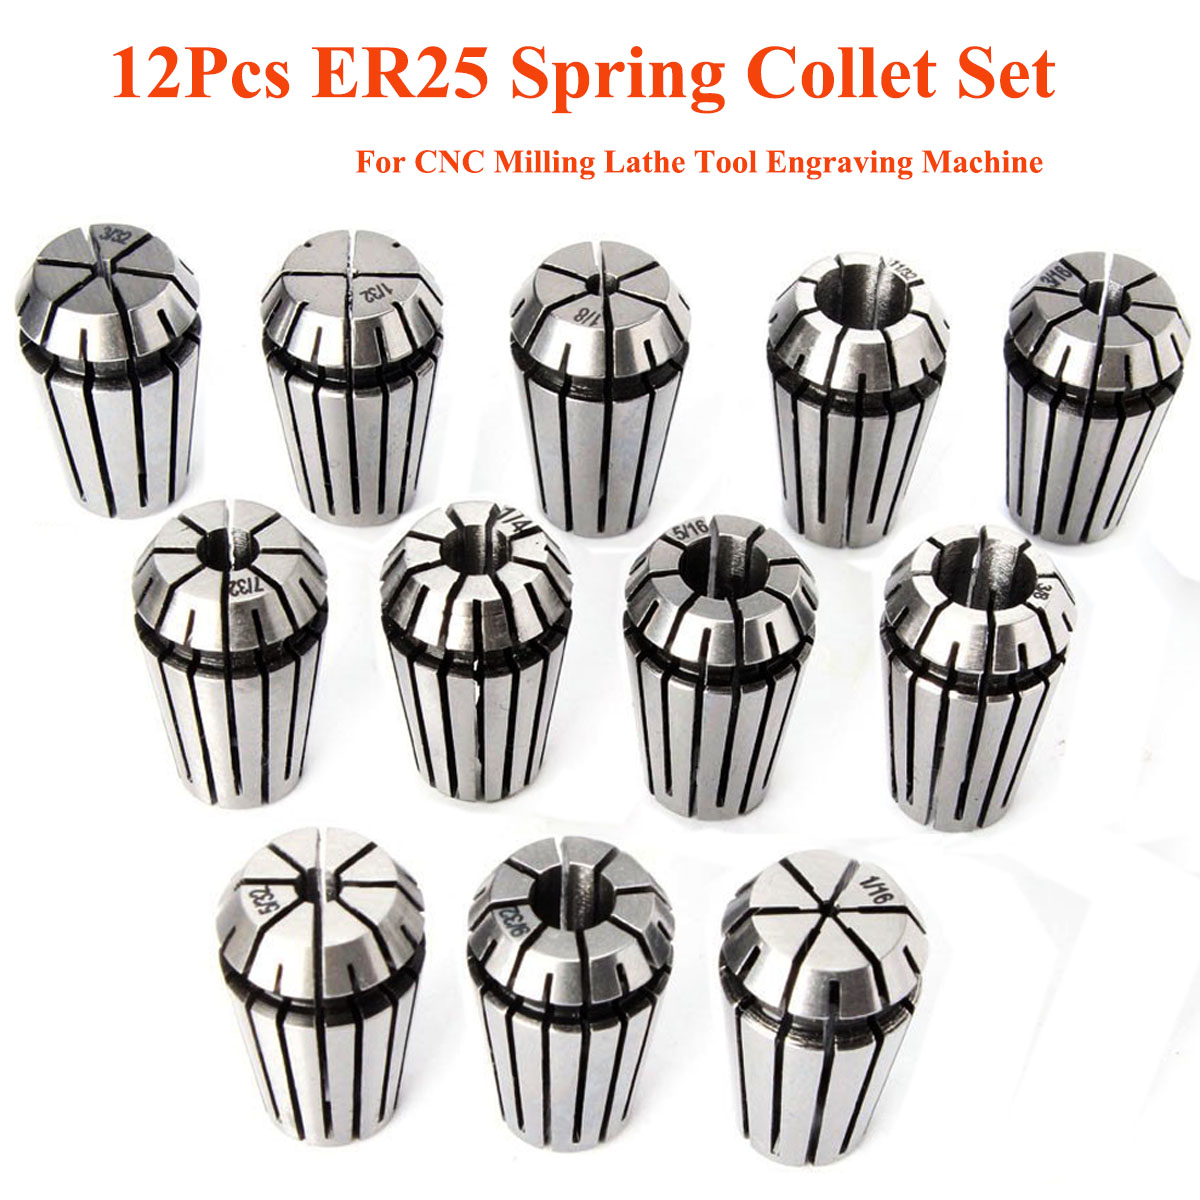 12pcs ER25 Chuck Collet 1/8 to 5/8 Inch Spring Collet Set Machine Tool Holder ER25 Collet for CNC Milling Lathe Tool ботильоны marie collet marie collet ma144awcpfe7